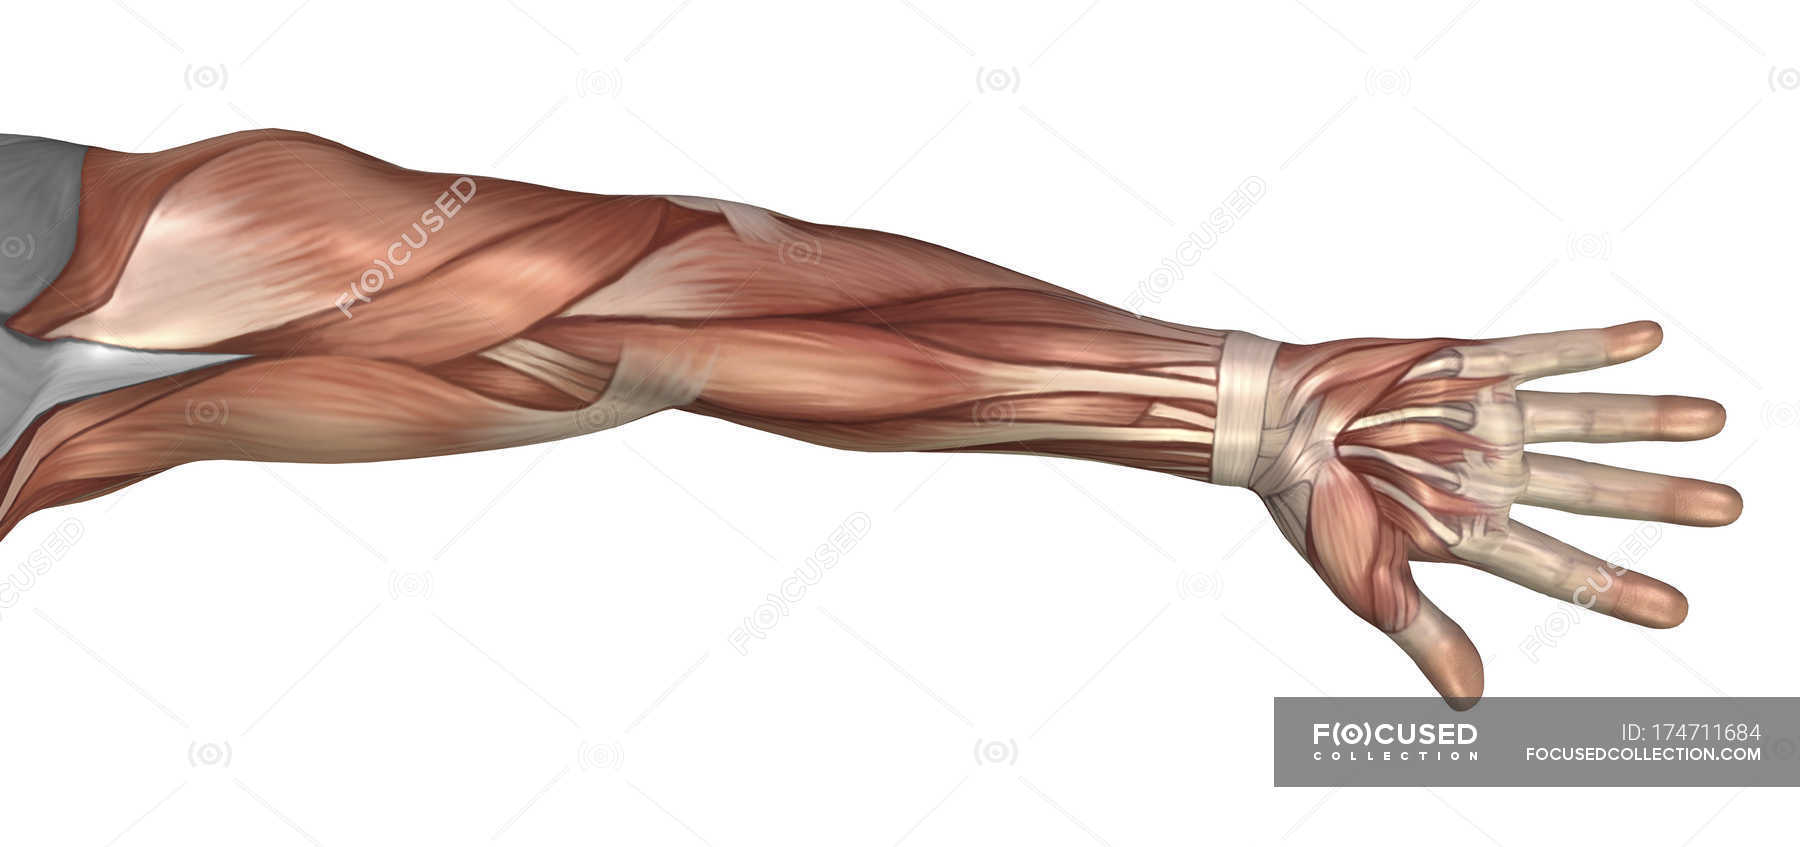 hight resolution of muscle anatomy of the human arm stock photos